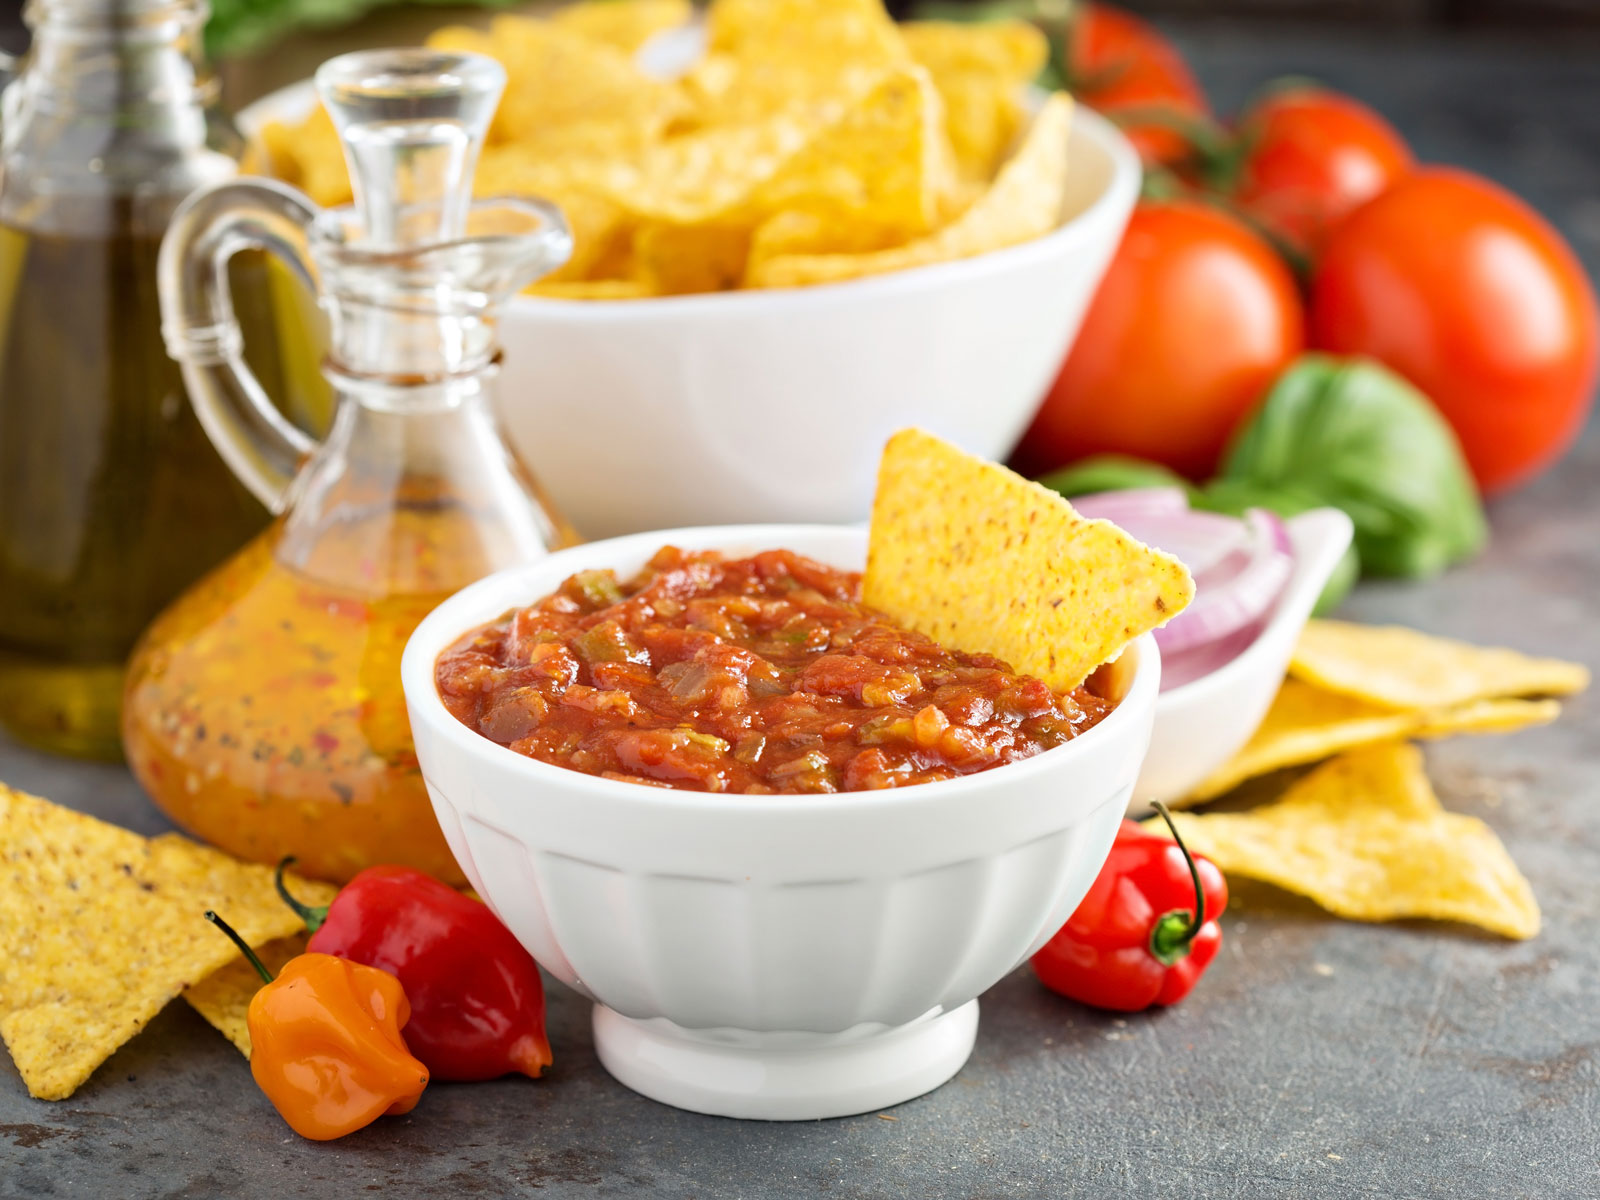 chips-salsa-subscription-FT-BLOG0128.jpg